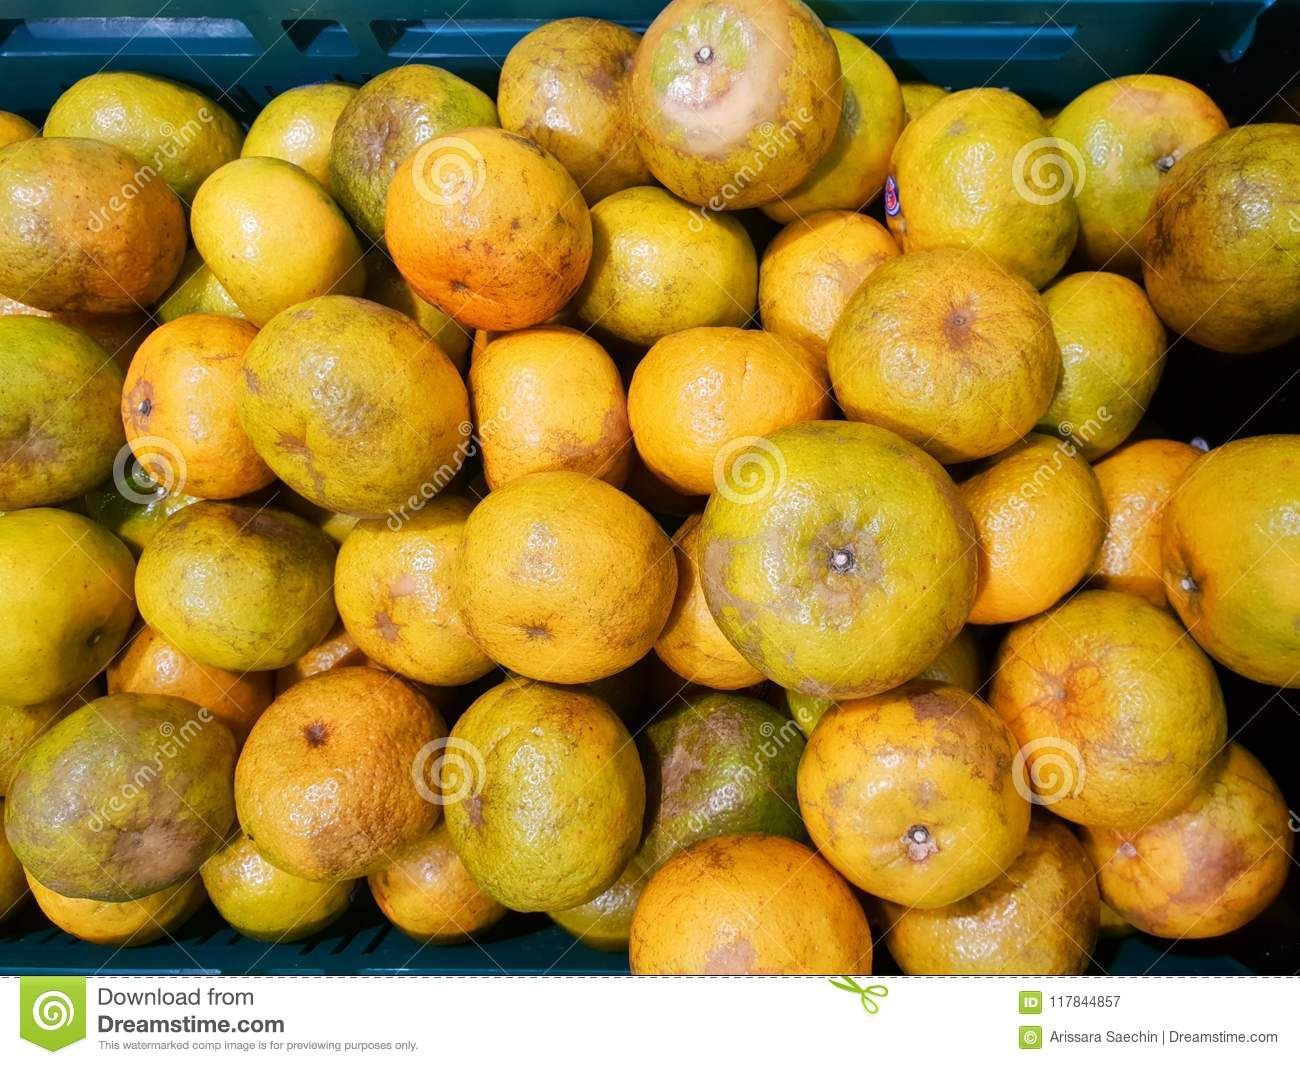 Top view of orange fruit as a background on market stand in Thailand.